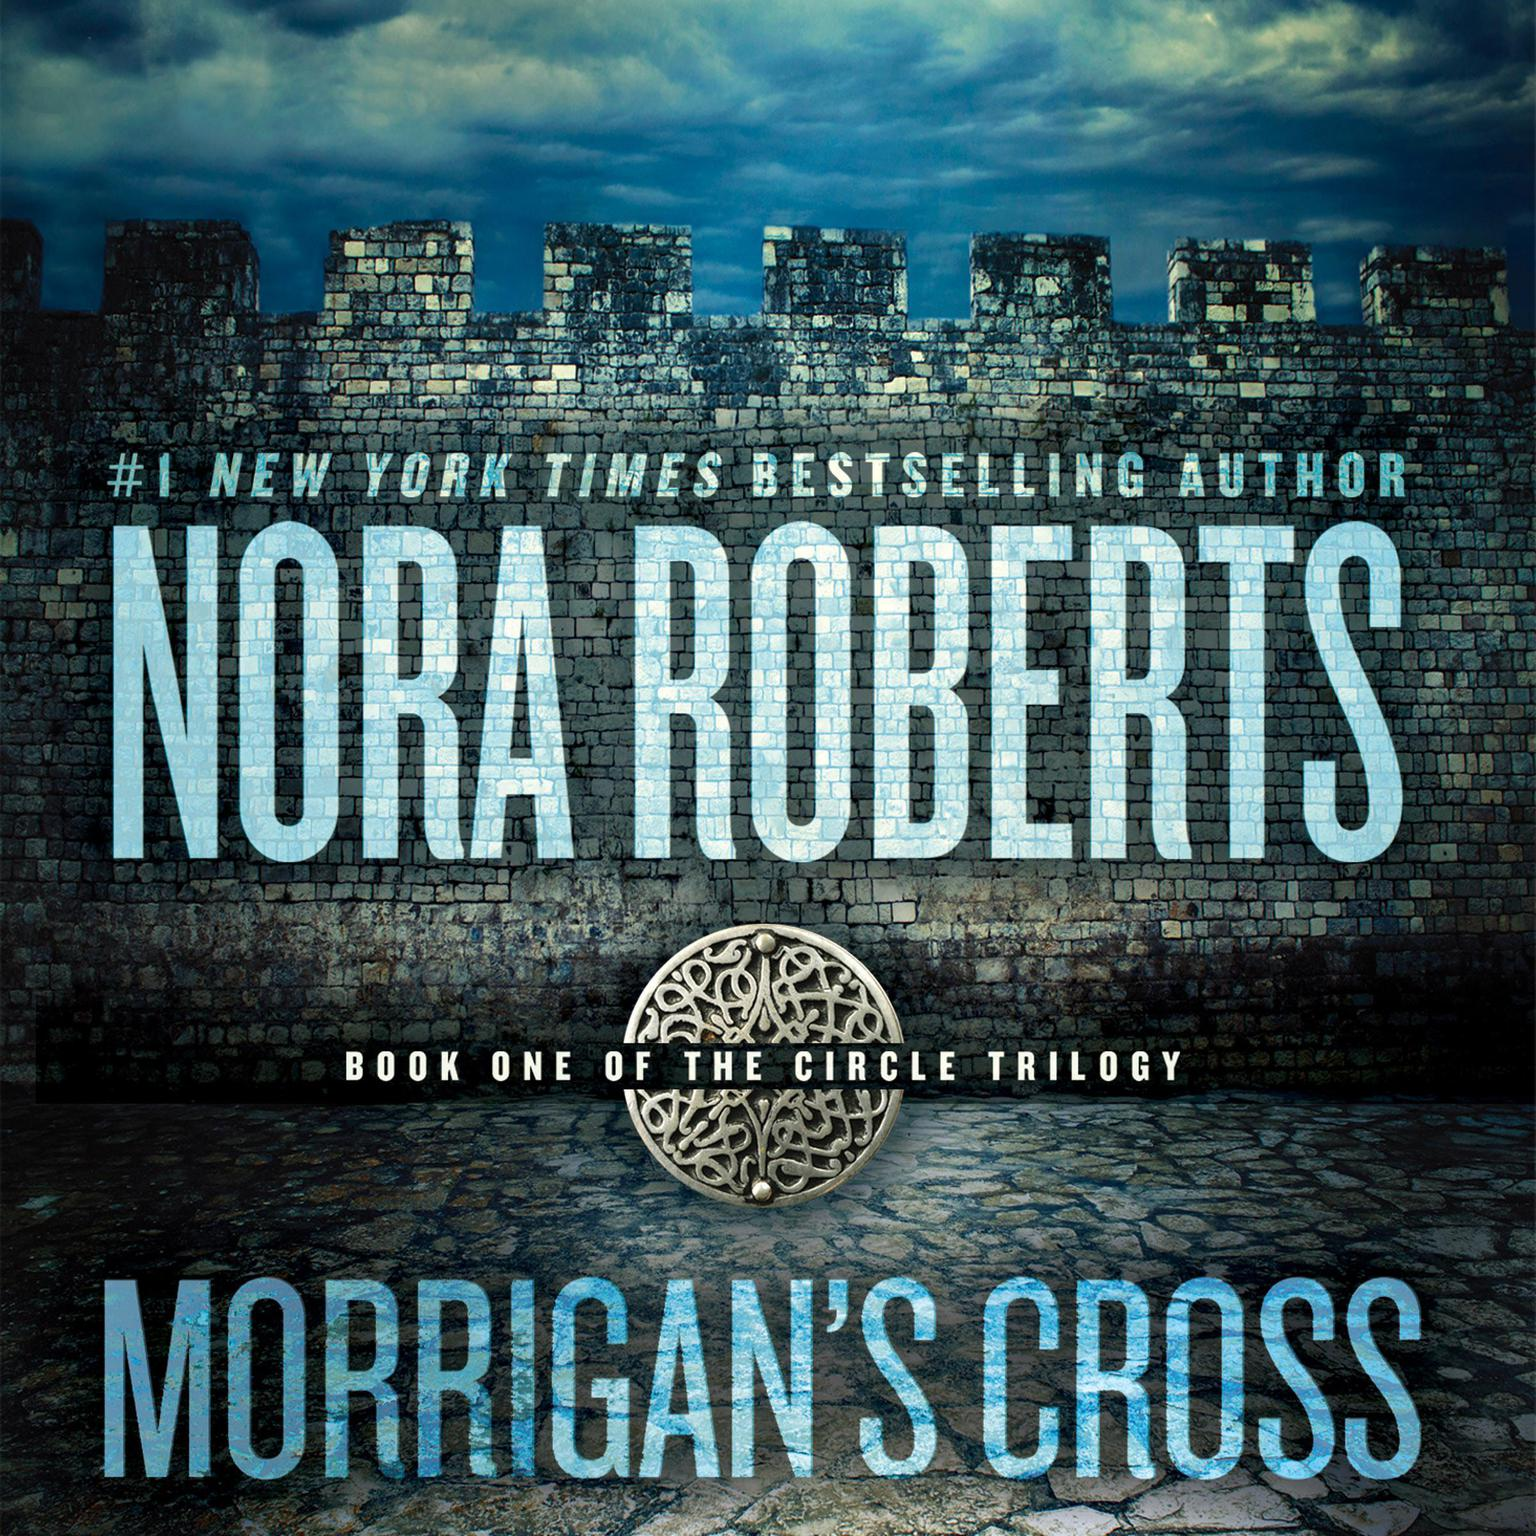 Printable Morrigan's Cross Audiobook Cover Art